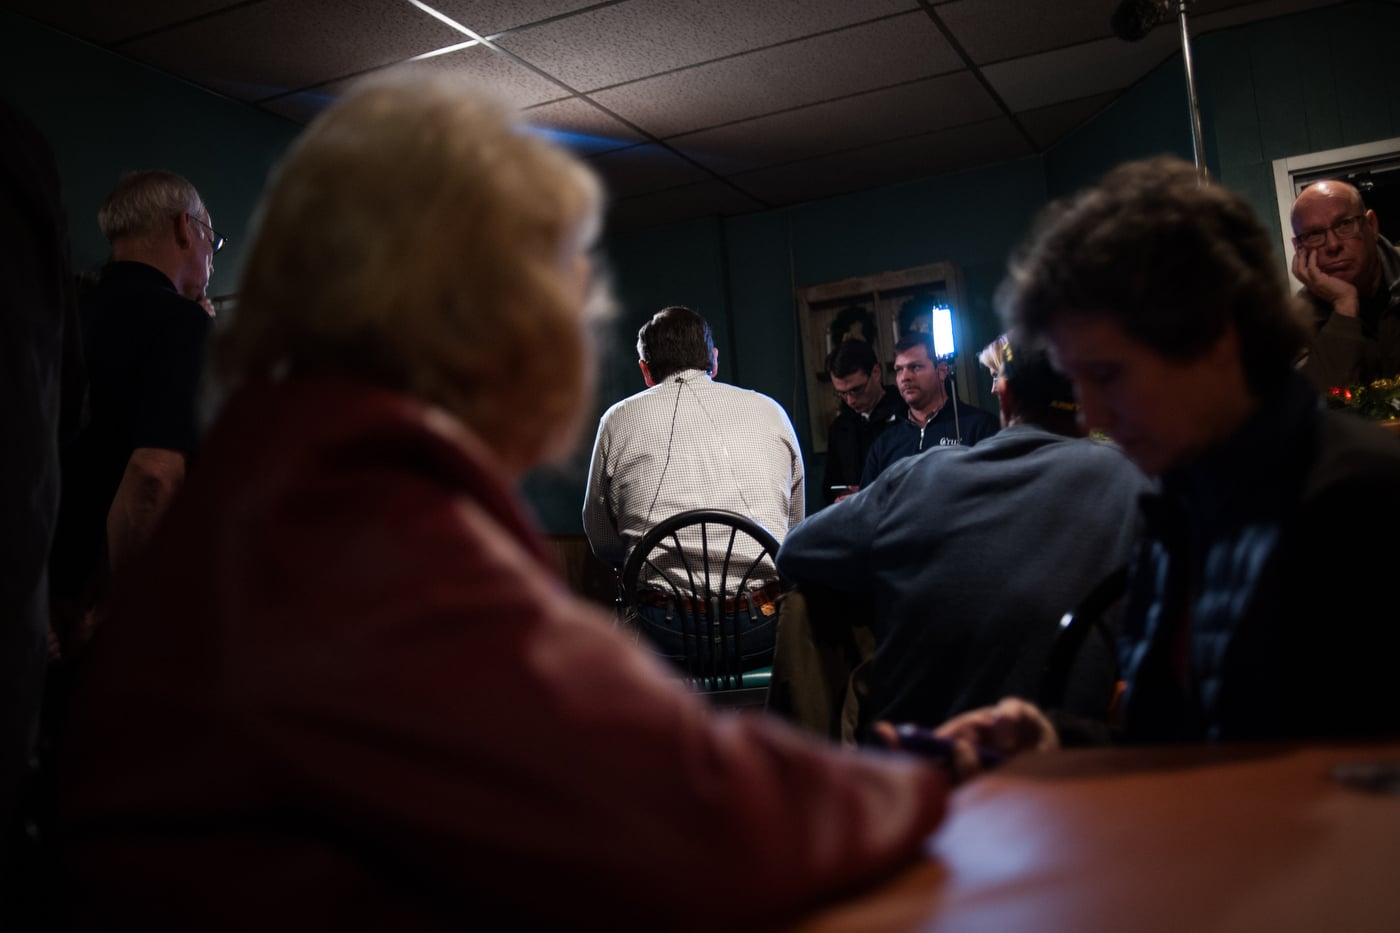 U.S. Republican presidential candidate Ted Cruz does a live television interview with Sean Hannity before a campaign stop at Prime Time Restaurant in Guthrie Center, Iowa January 4, 2016. REUTERS/Mark Kauzlarich